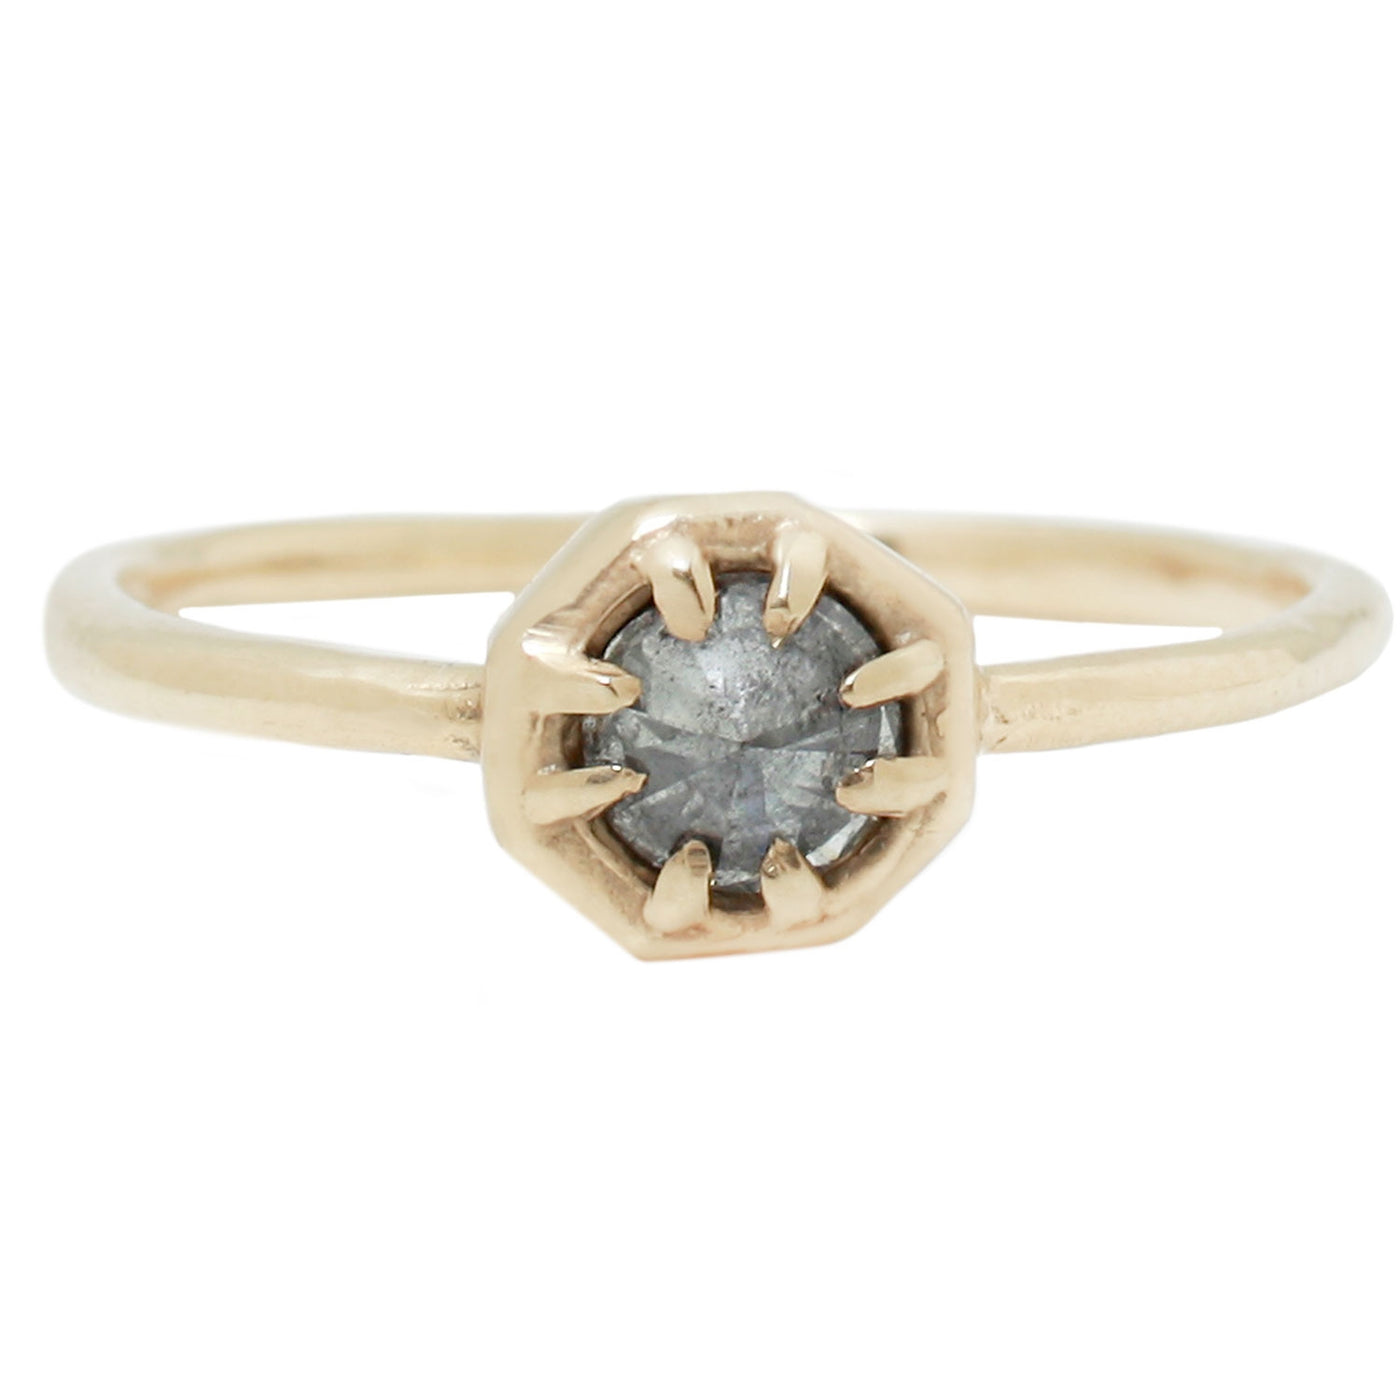 Lauren Wolf Jewelry - Tiny Gray Diamond Solitaire Ring Set in Yellow Gold